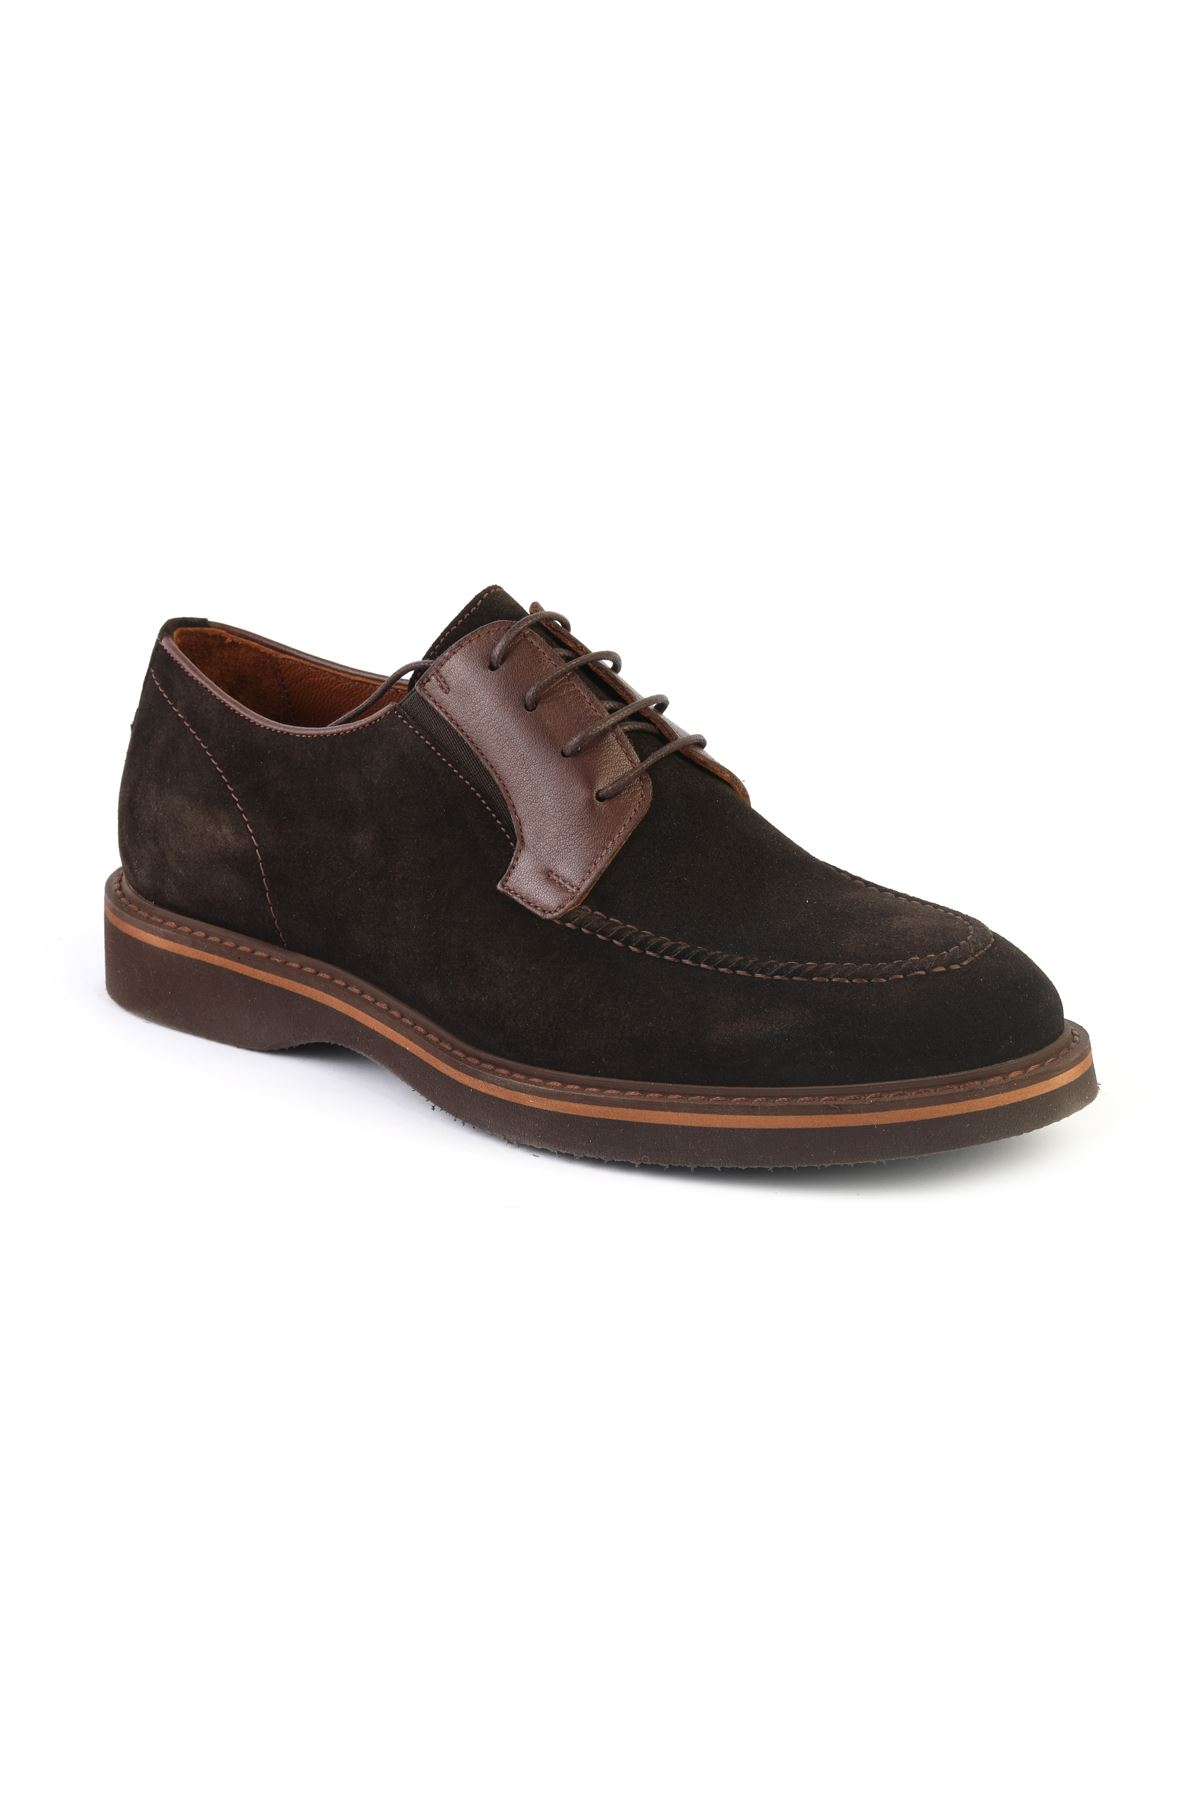 Libero T1145 Brown Oxford Shoes